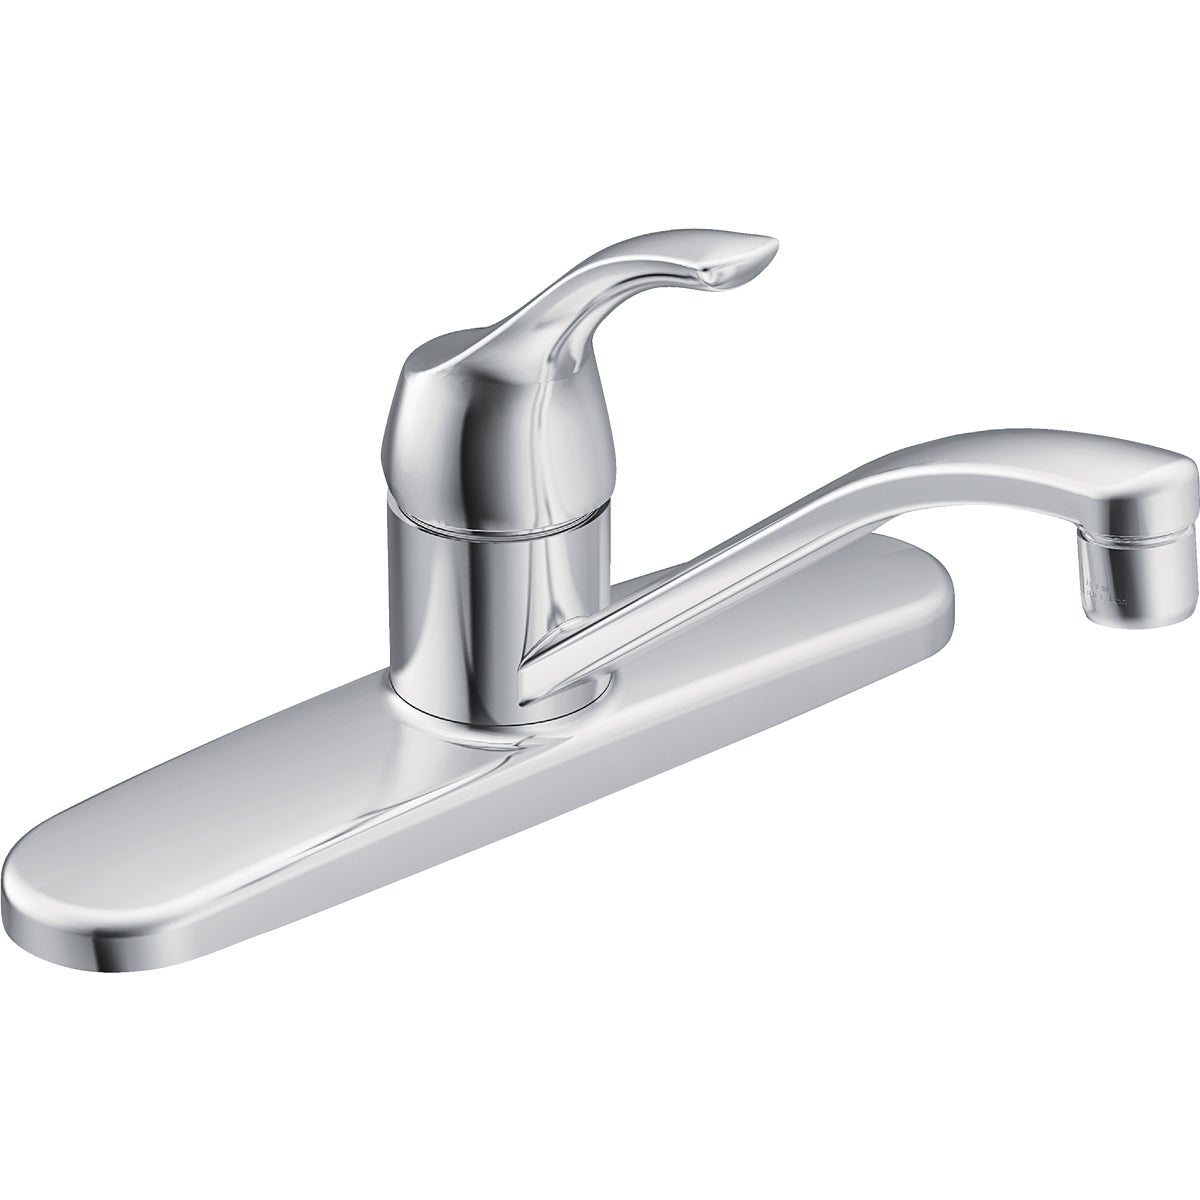 1H KTCHN FAUCET CHROME - CA87526 by Moen Inc